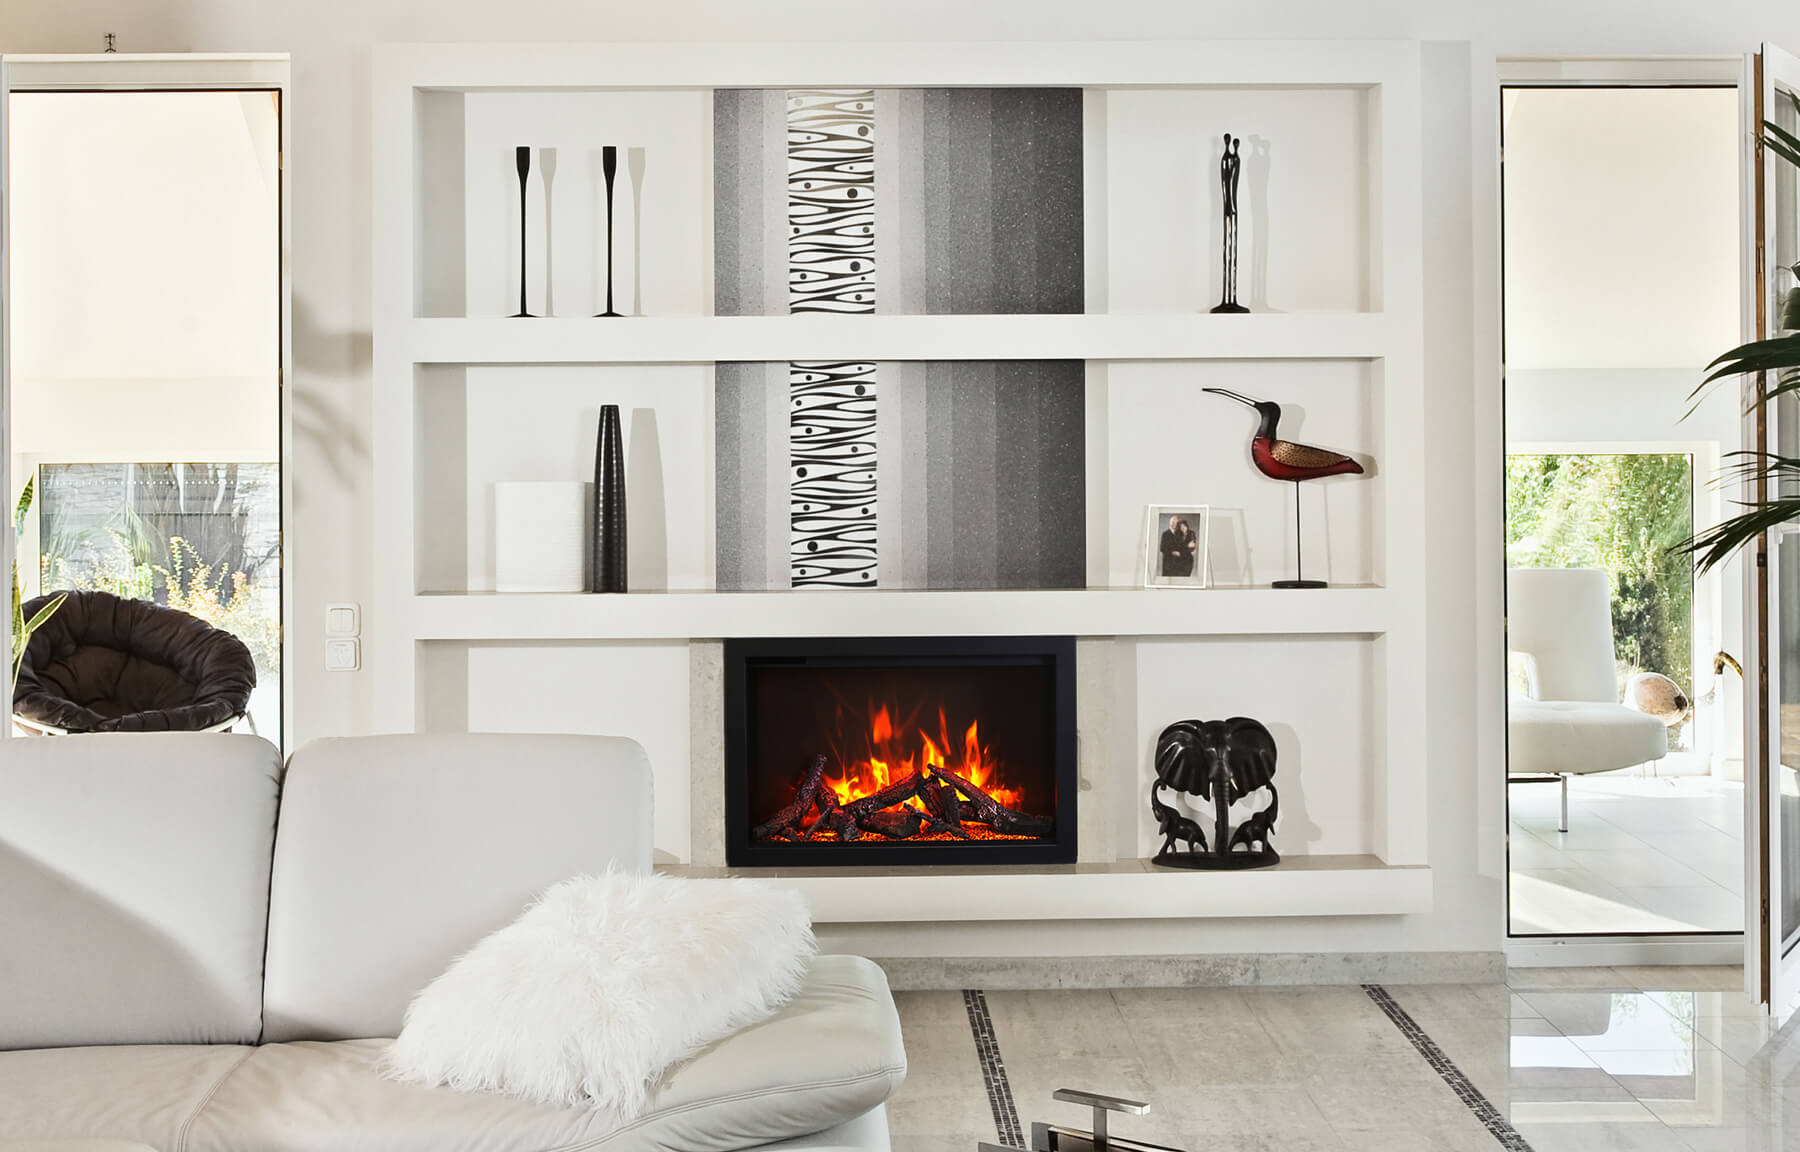 smaller electric fireplace set into shelving